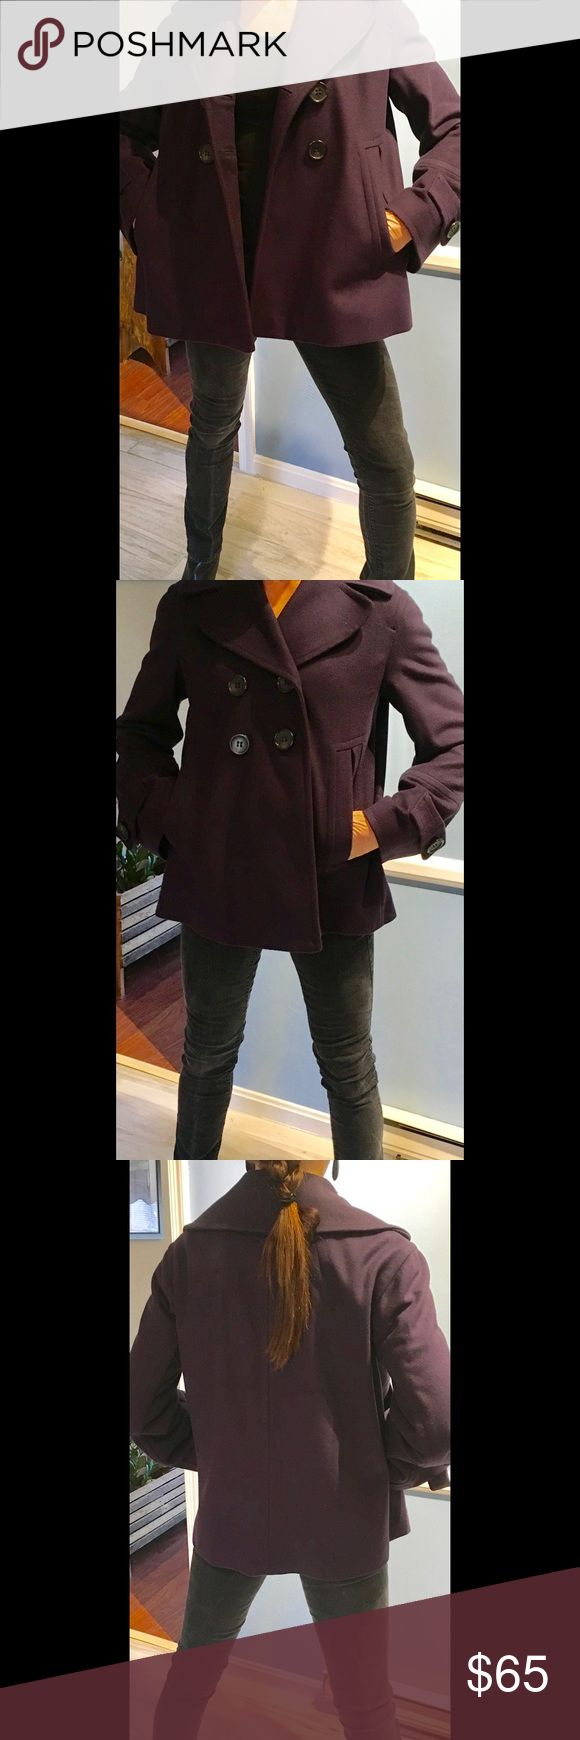 French Connection Wool Peacoat, size 8 Gorgeous Plum Wool Coat, excellent condition!! French Connection Jackets & Coats Pea Coats